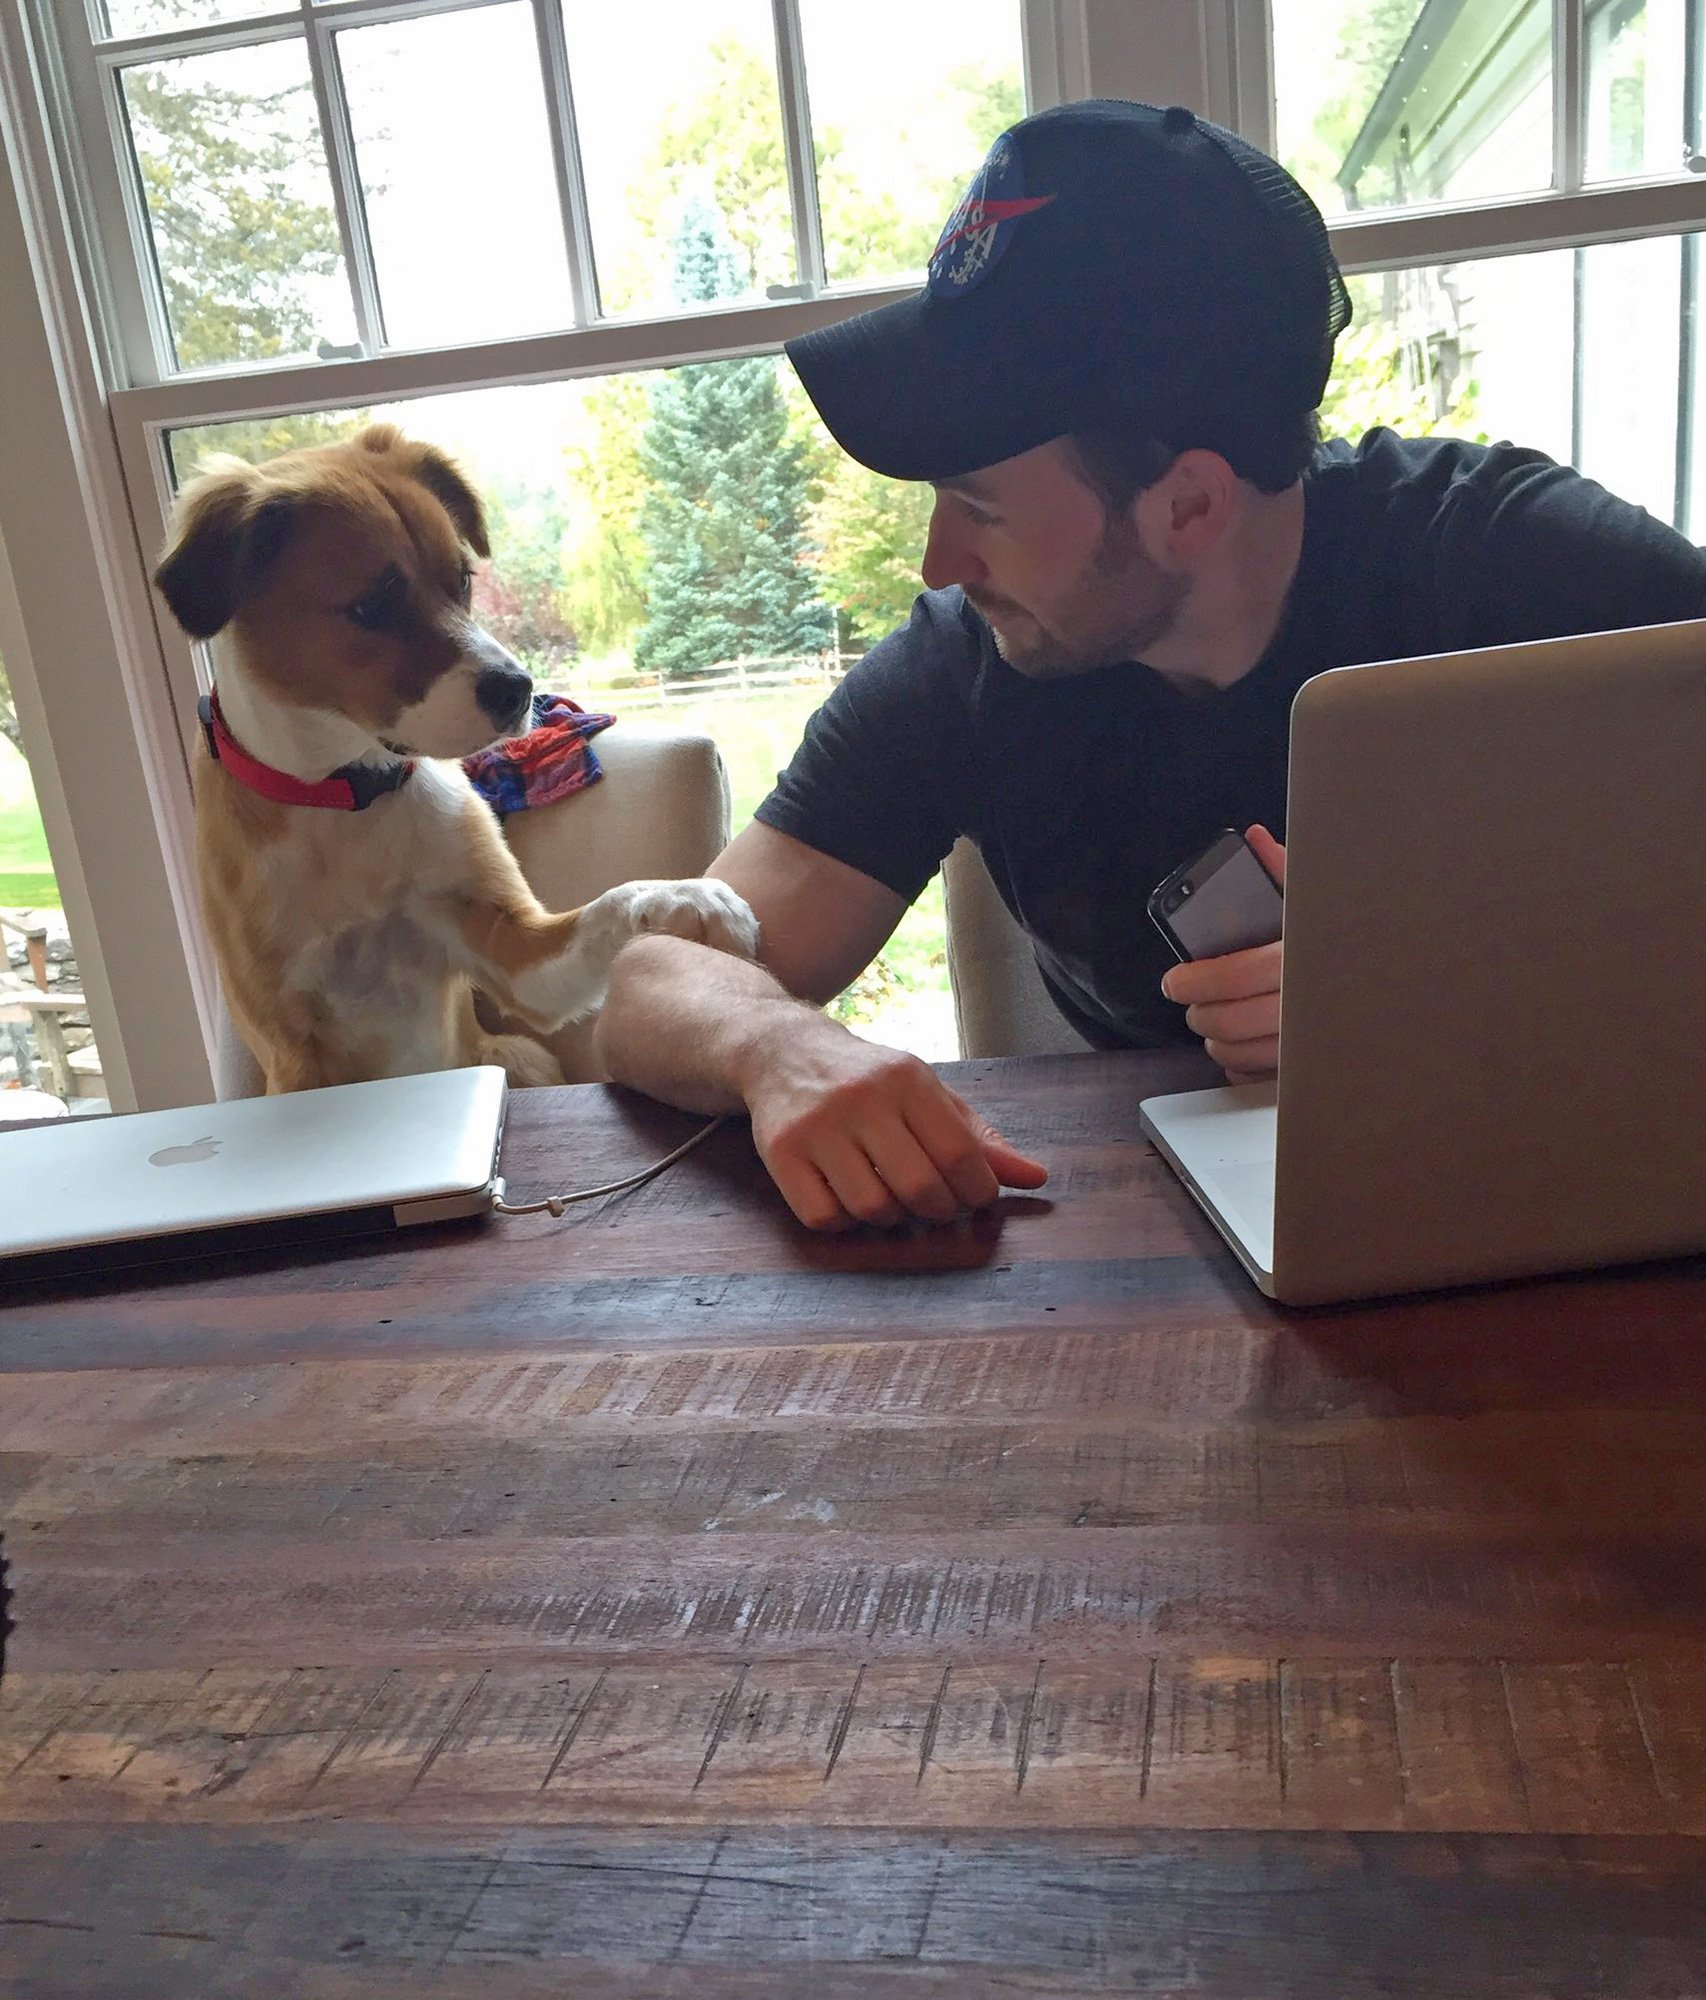 In honor of his birthday, a @ChrisEvans and his dog appreciation post to ✨�� bless your timeline ��✨ today. �� https://t.co/LWNWEW3Zqz